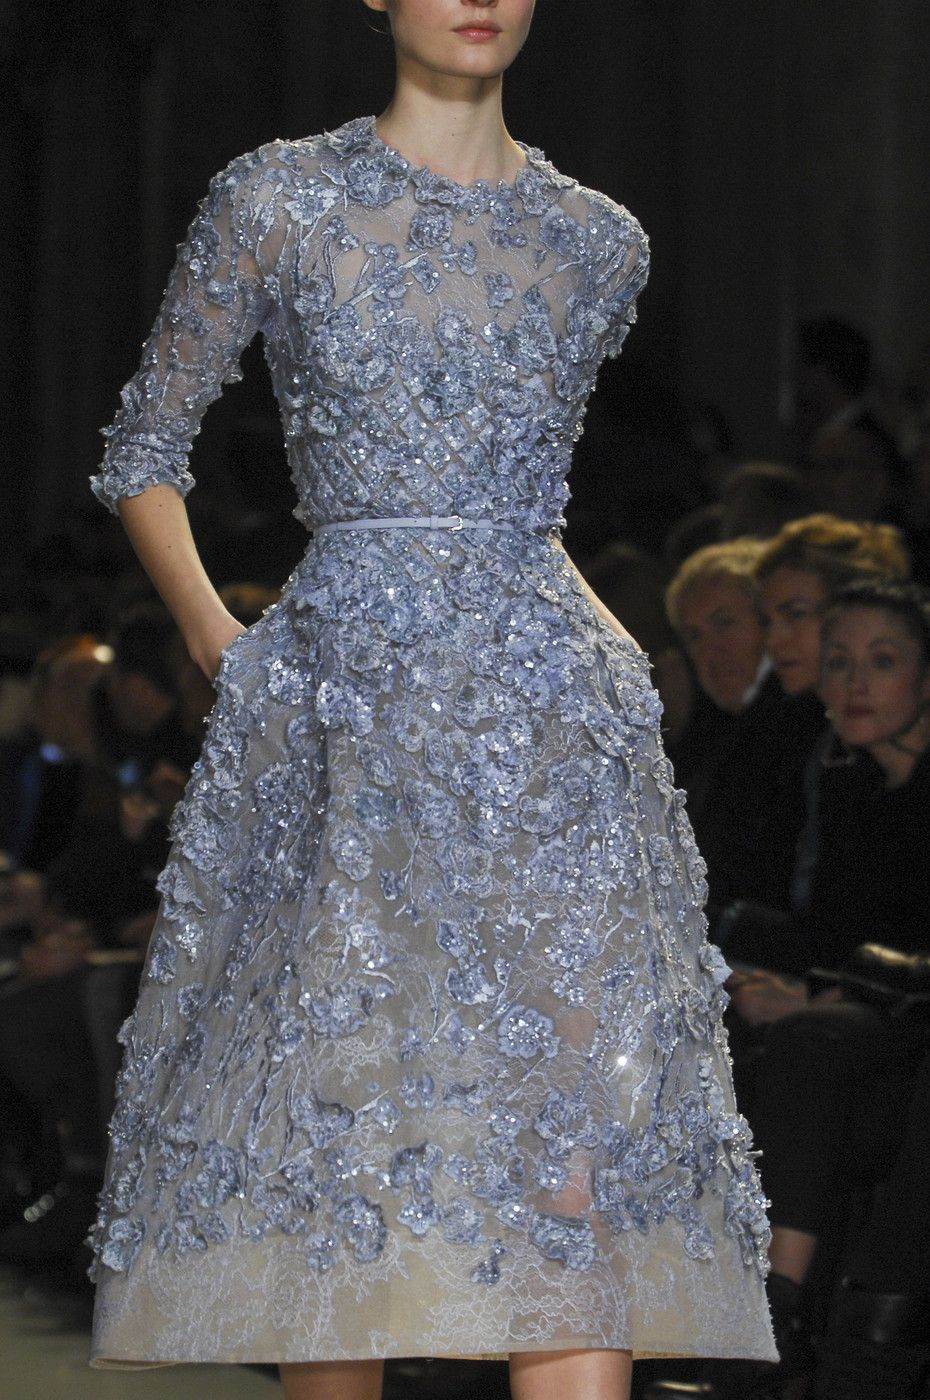 Elie saab at couture spring elie saab spring couture and